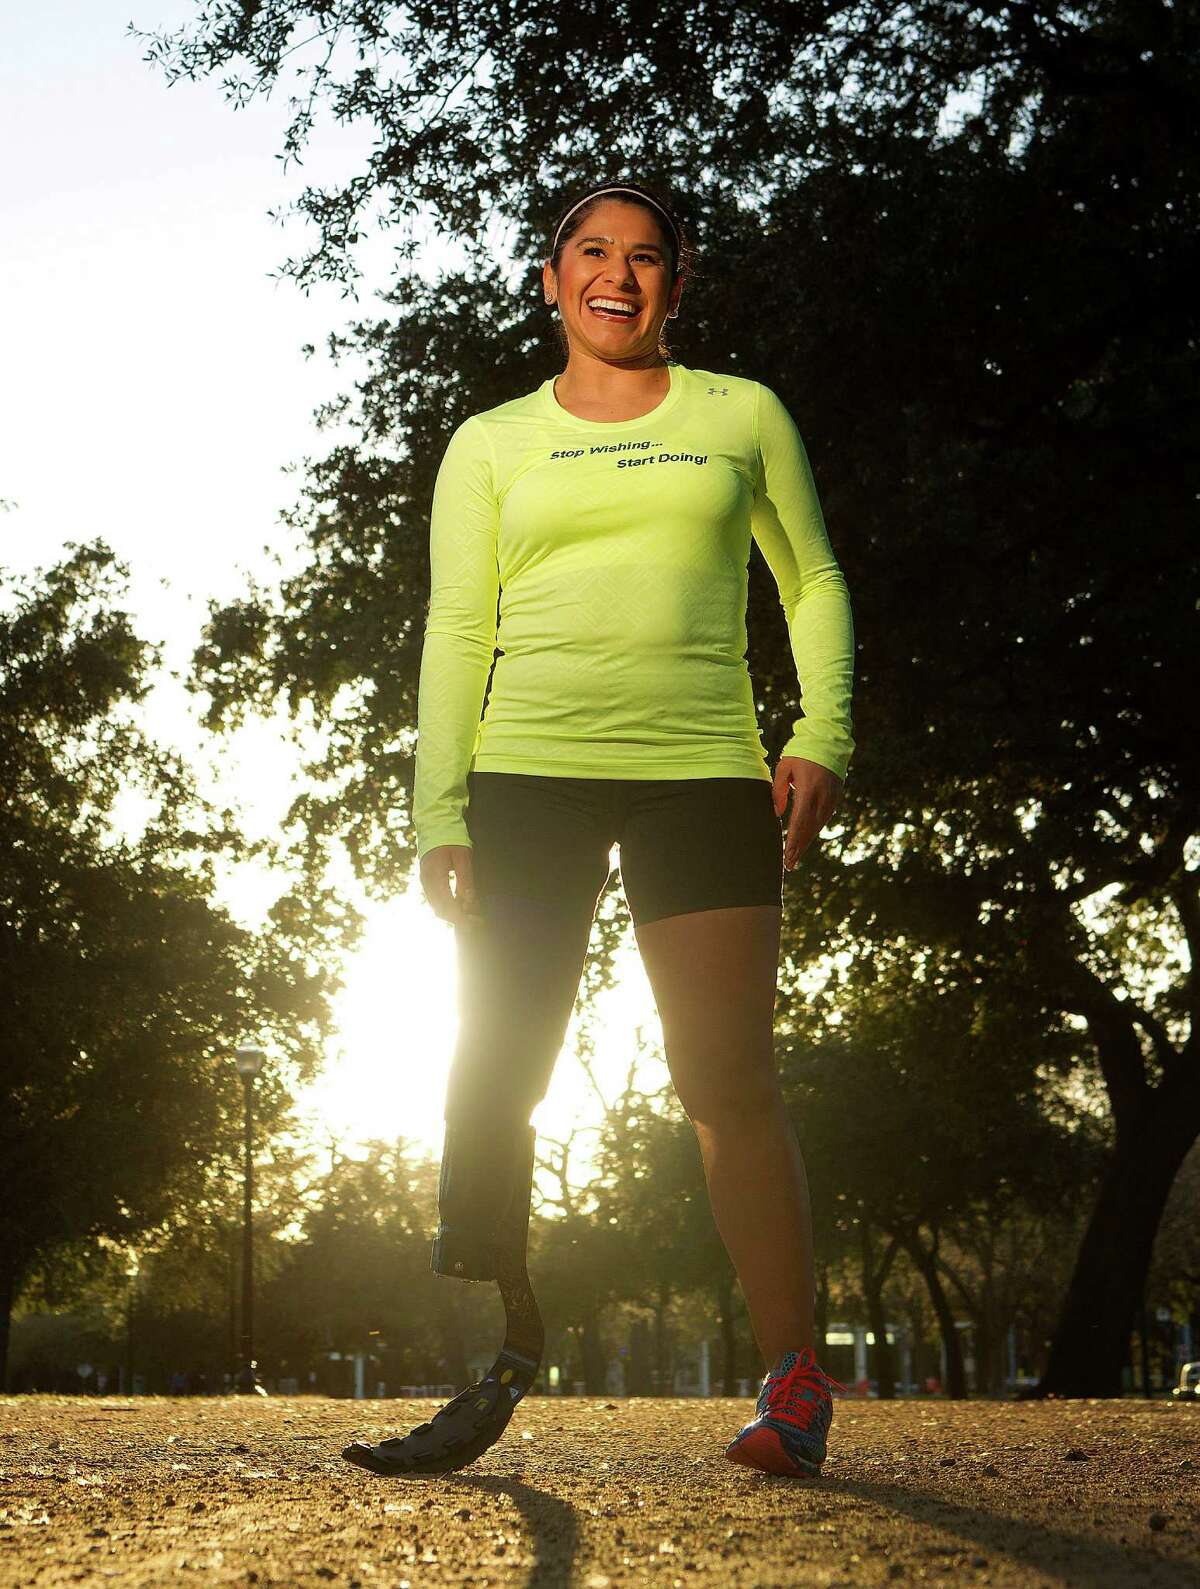 Alma Faz is believed to be the first person to attempt to run Houston's marathon with a prosthetic leg.